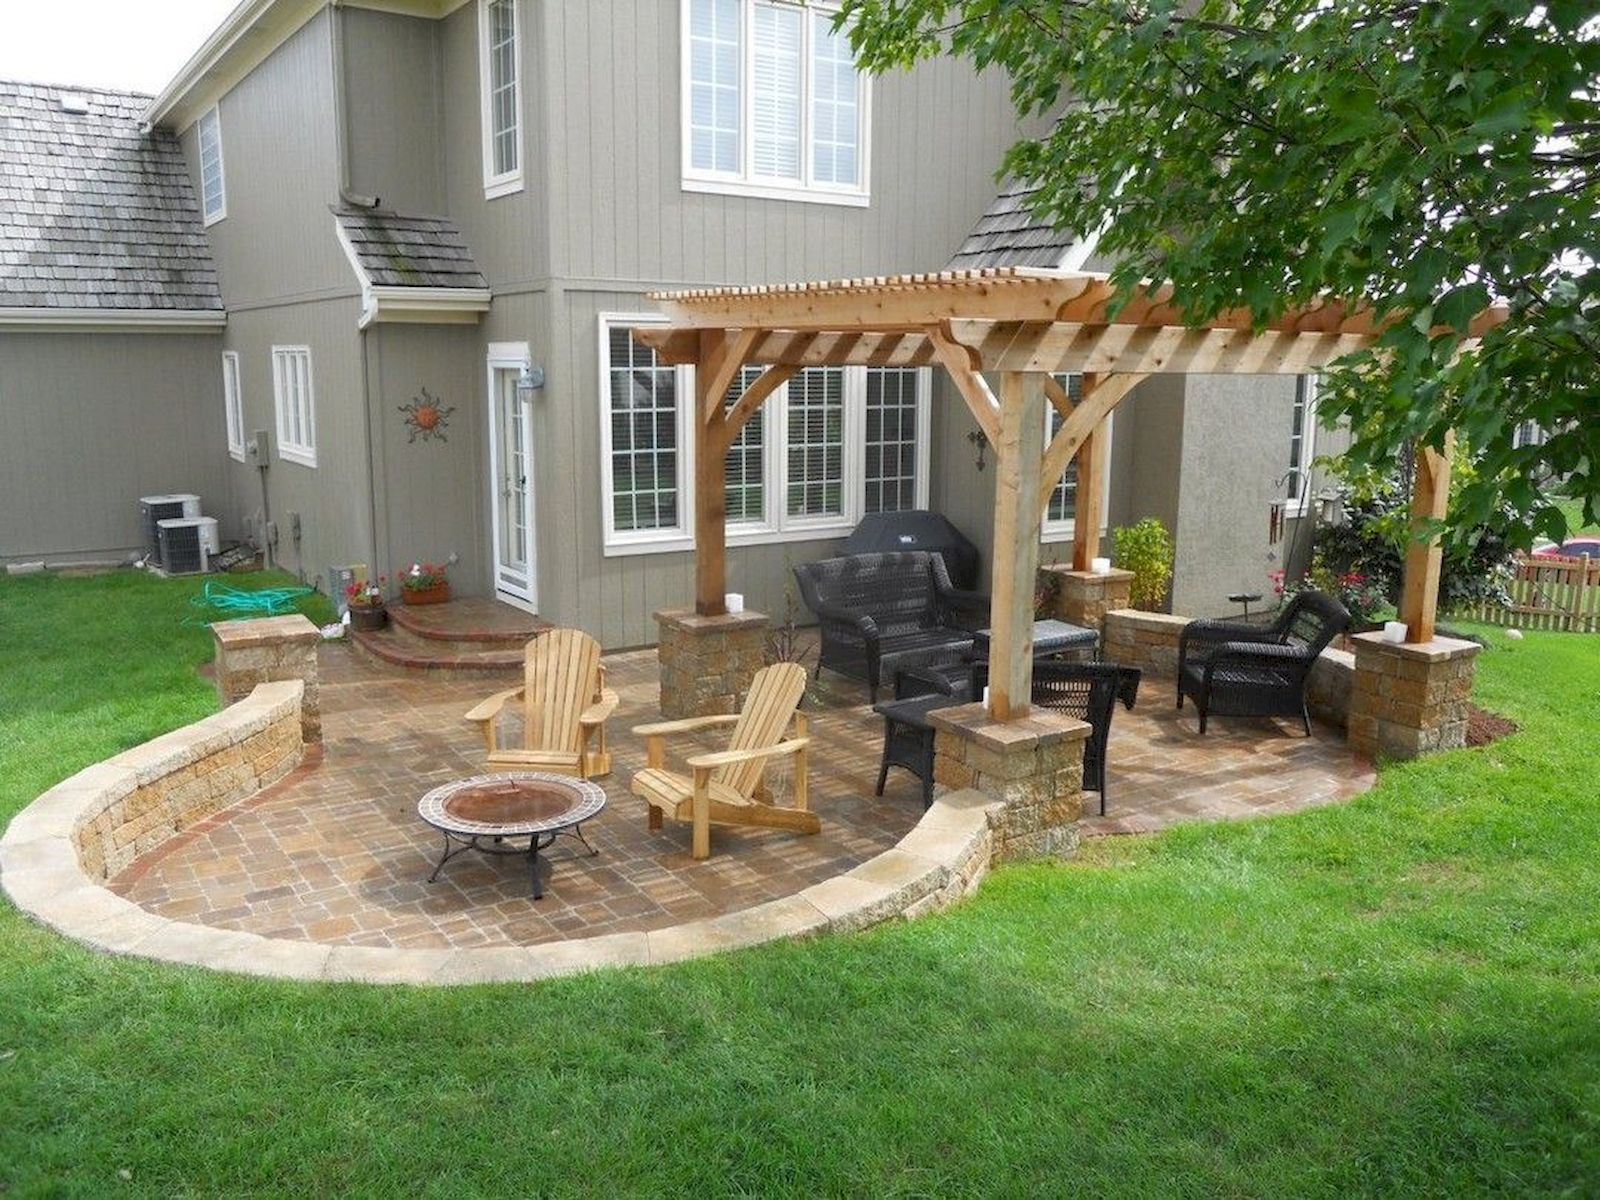 52 Most Creative Backyard Patio Ideas On A Budget 48